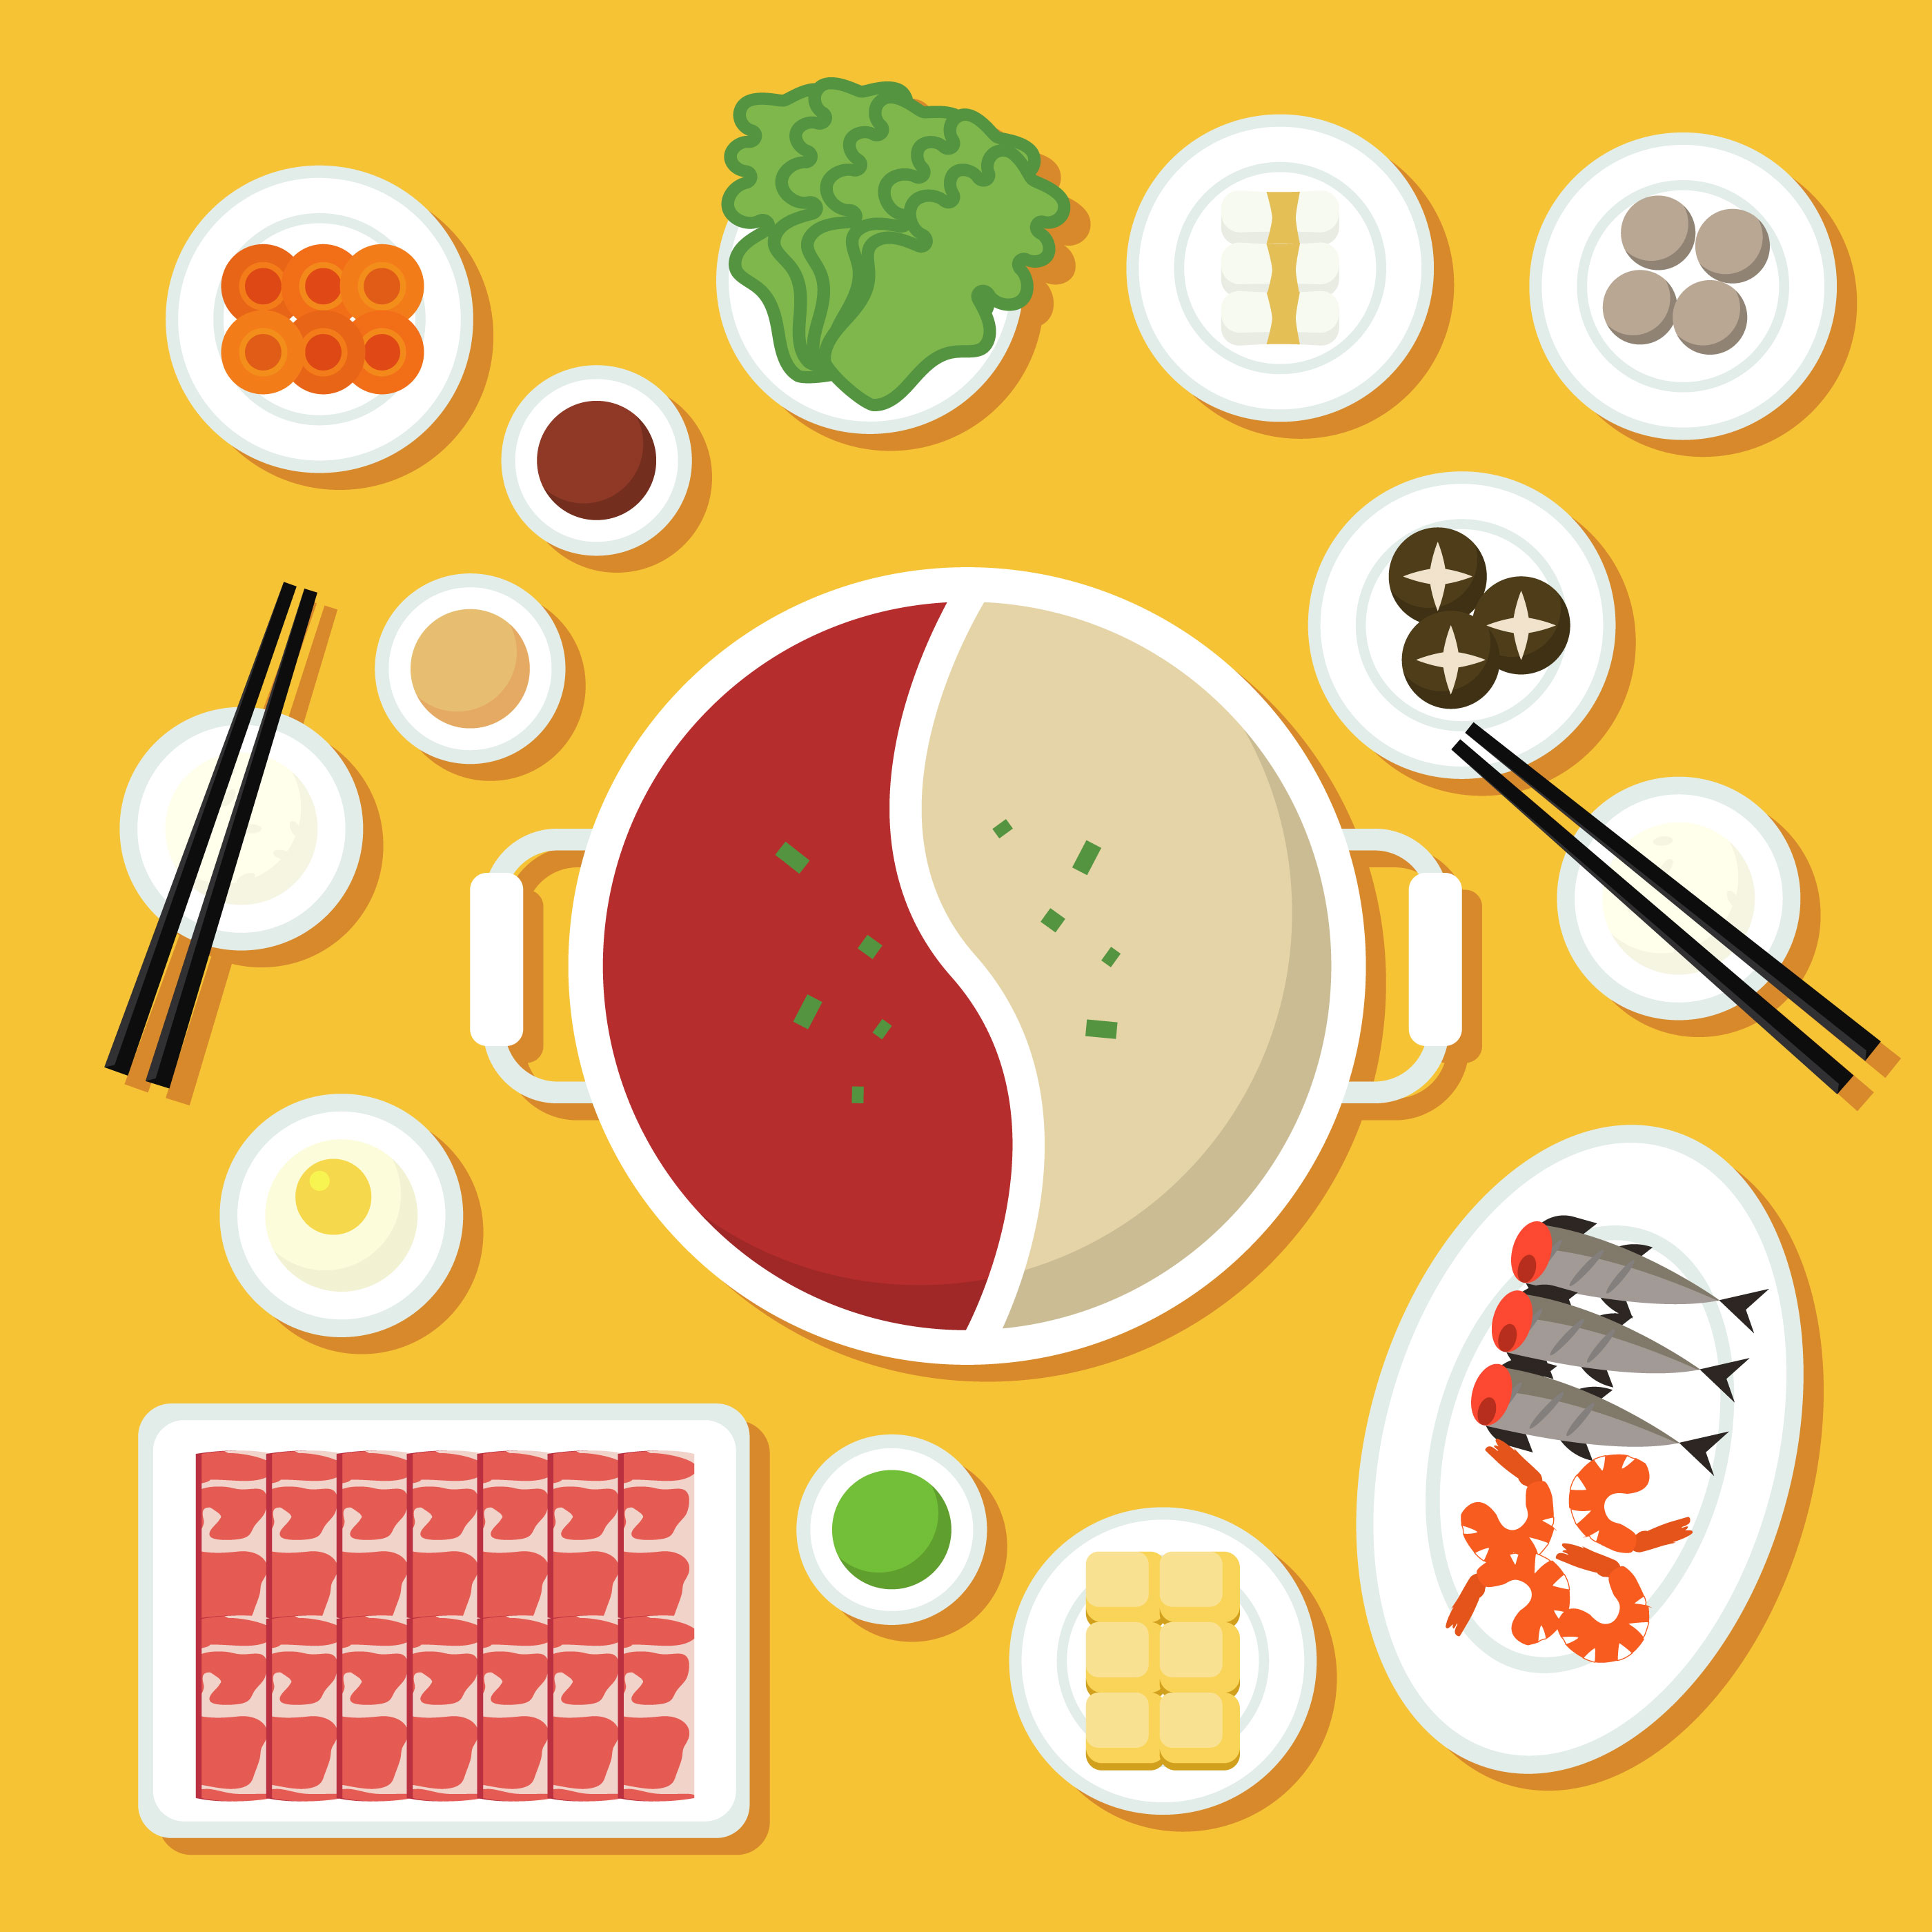 Hotpot And Ingredients Illustration Download Free Vector